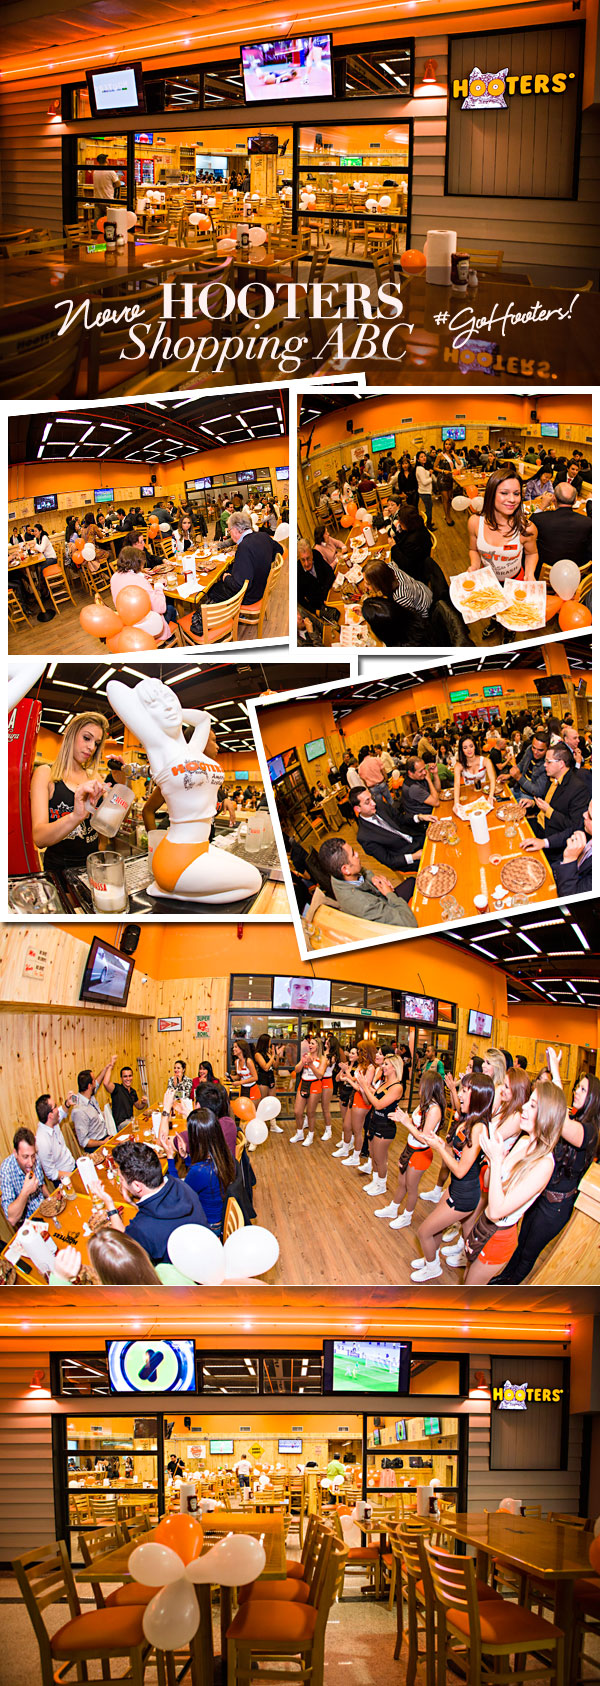 lala-noleto-hooters-shopping-abc-santo-andre-7